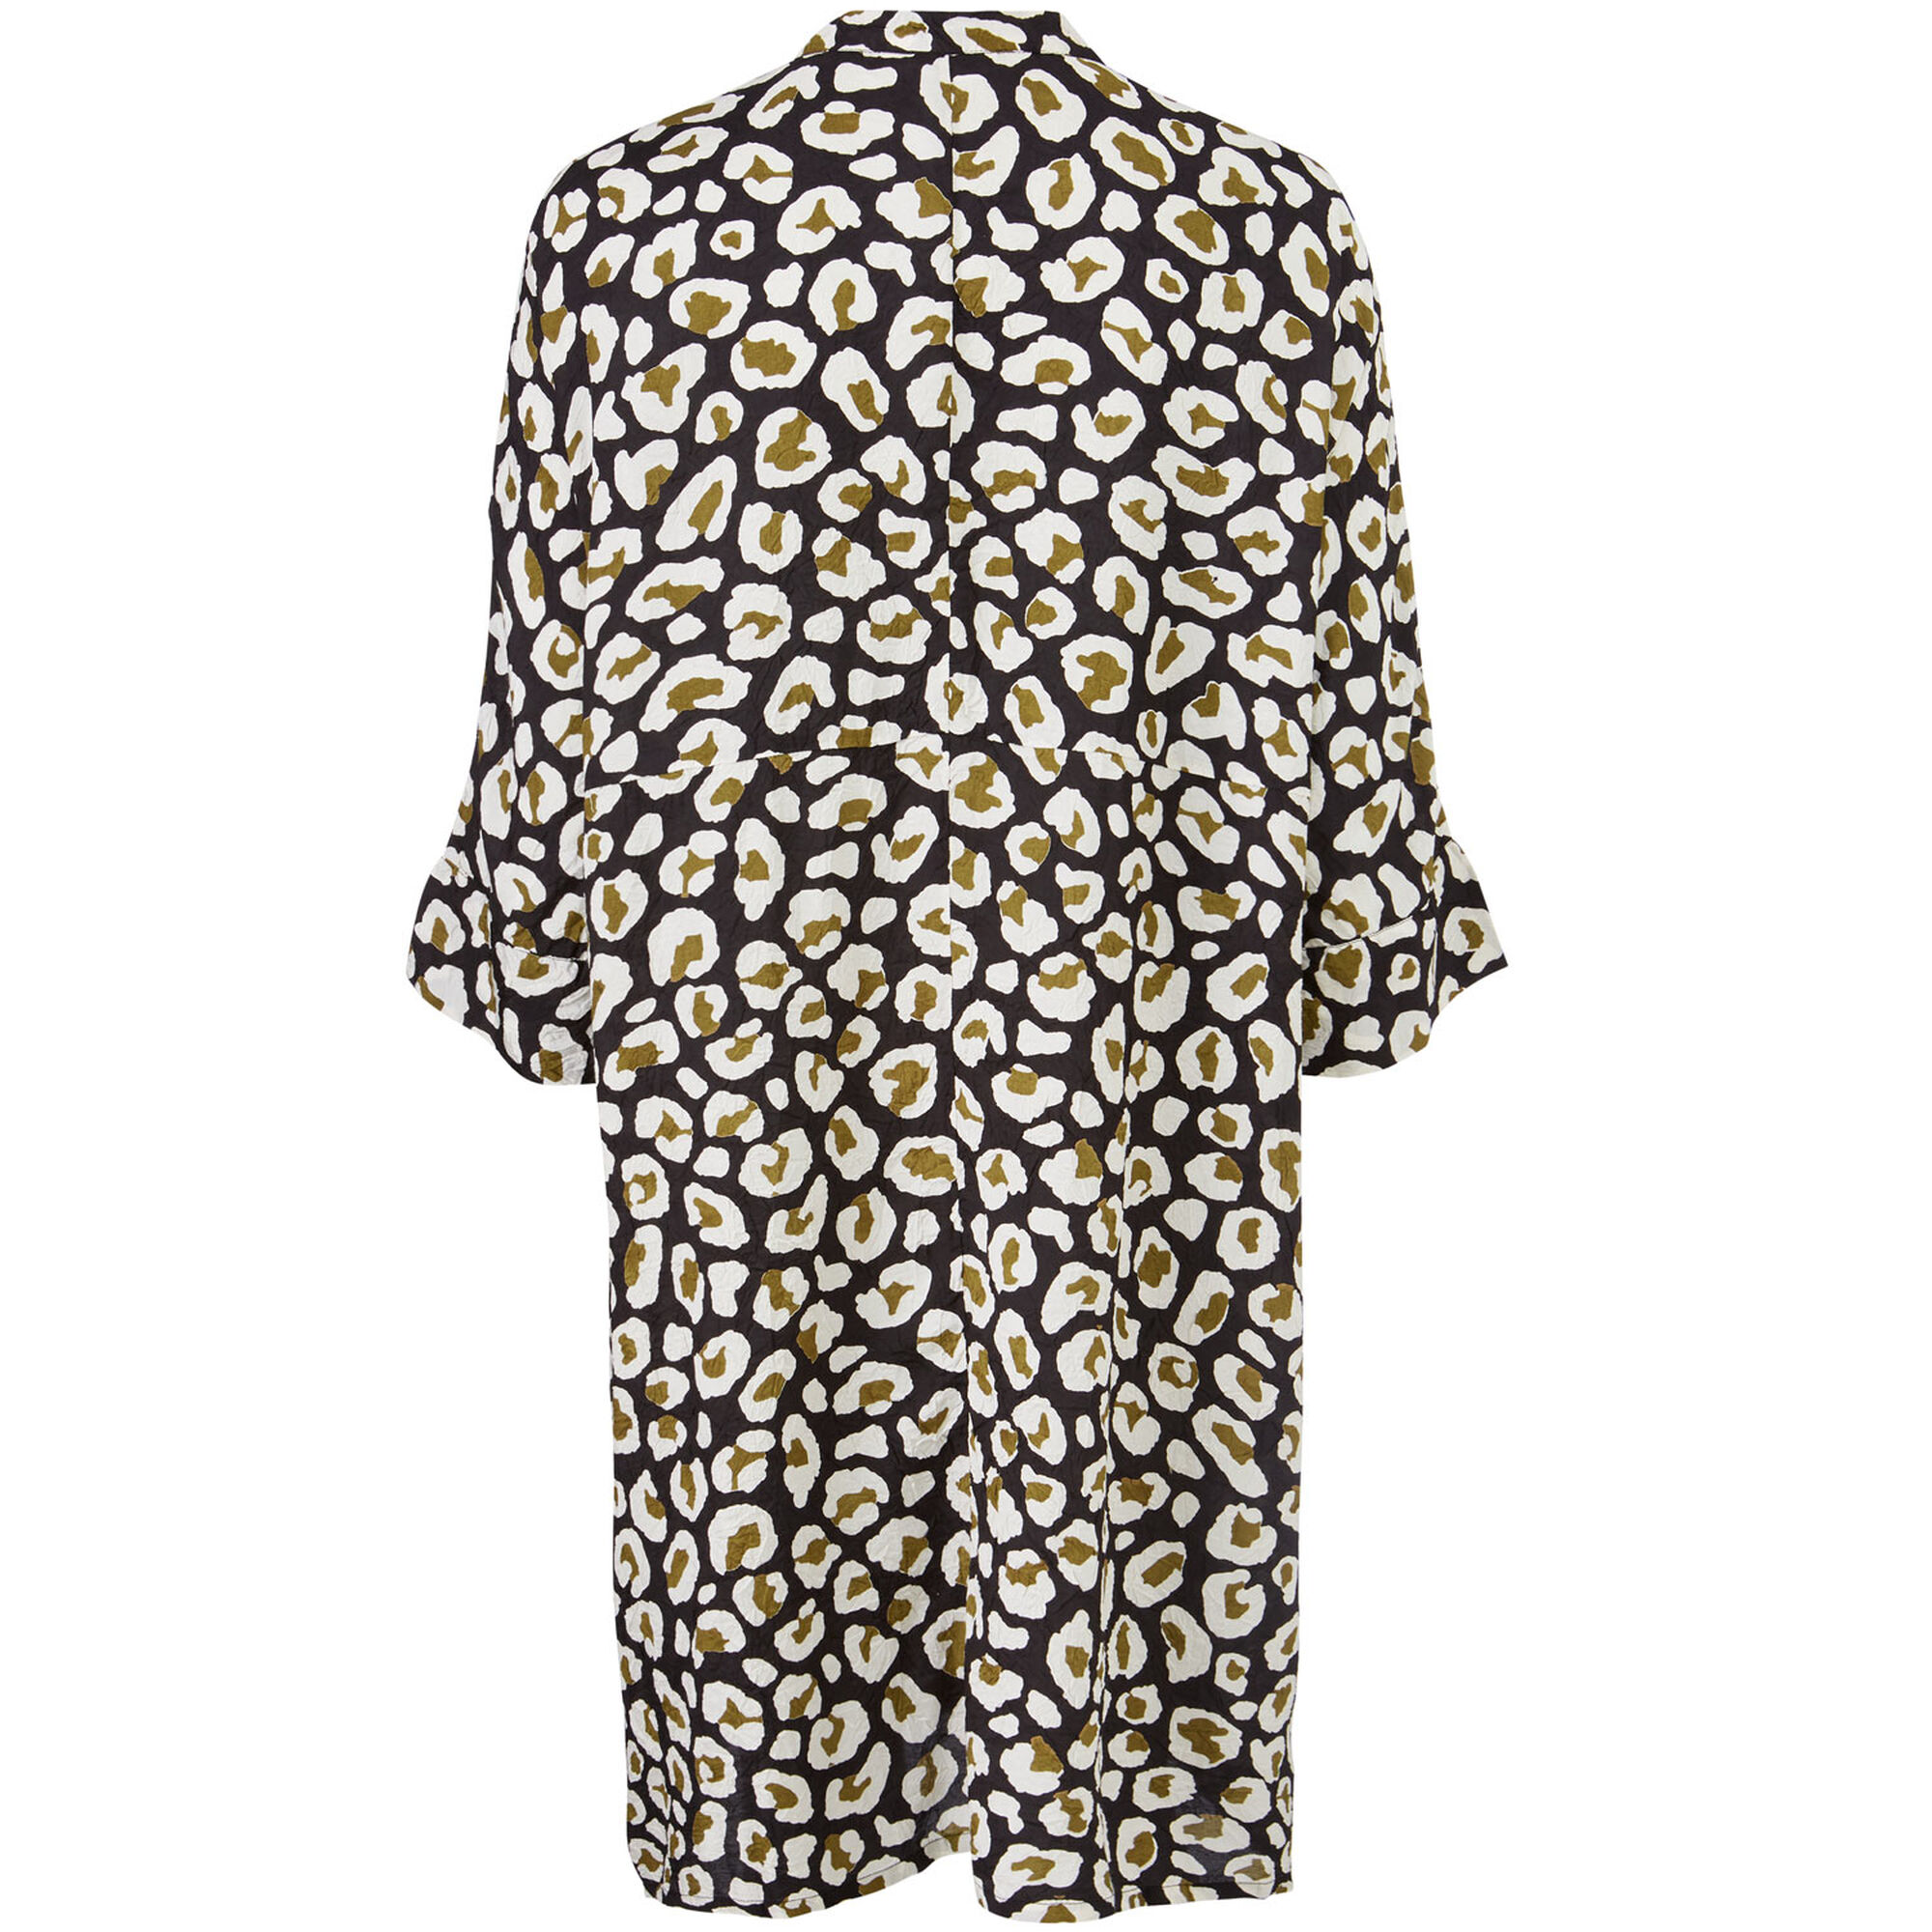 IOSETTA SHIRT DRESS, Beech, hi-res